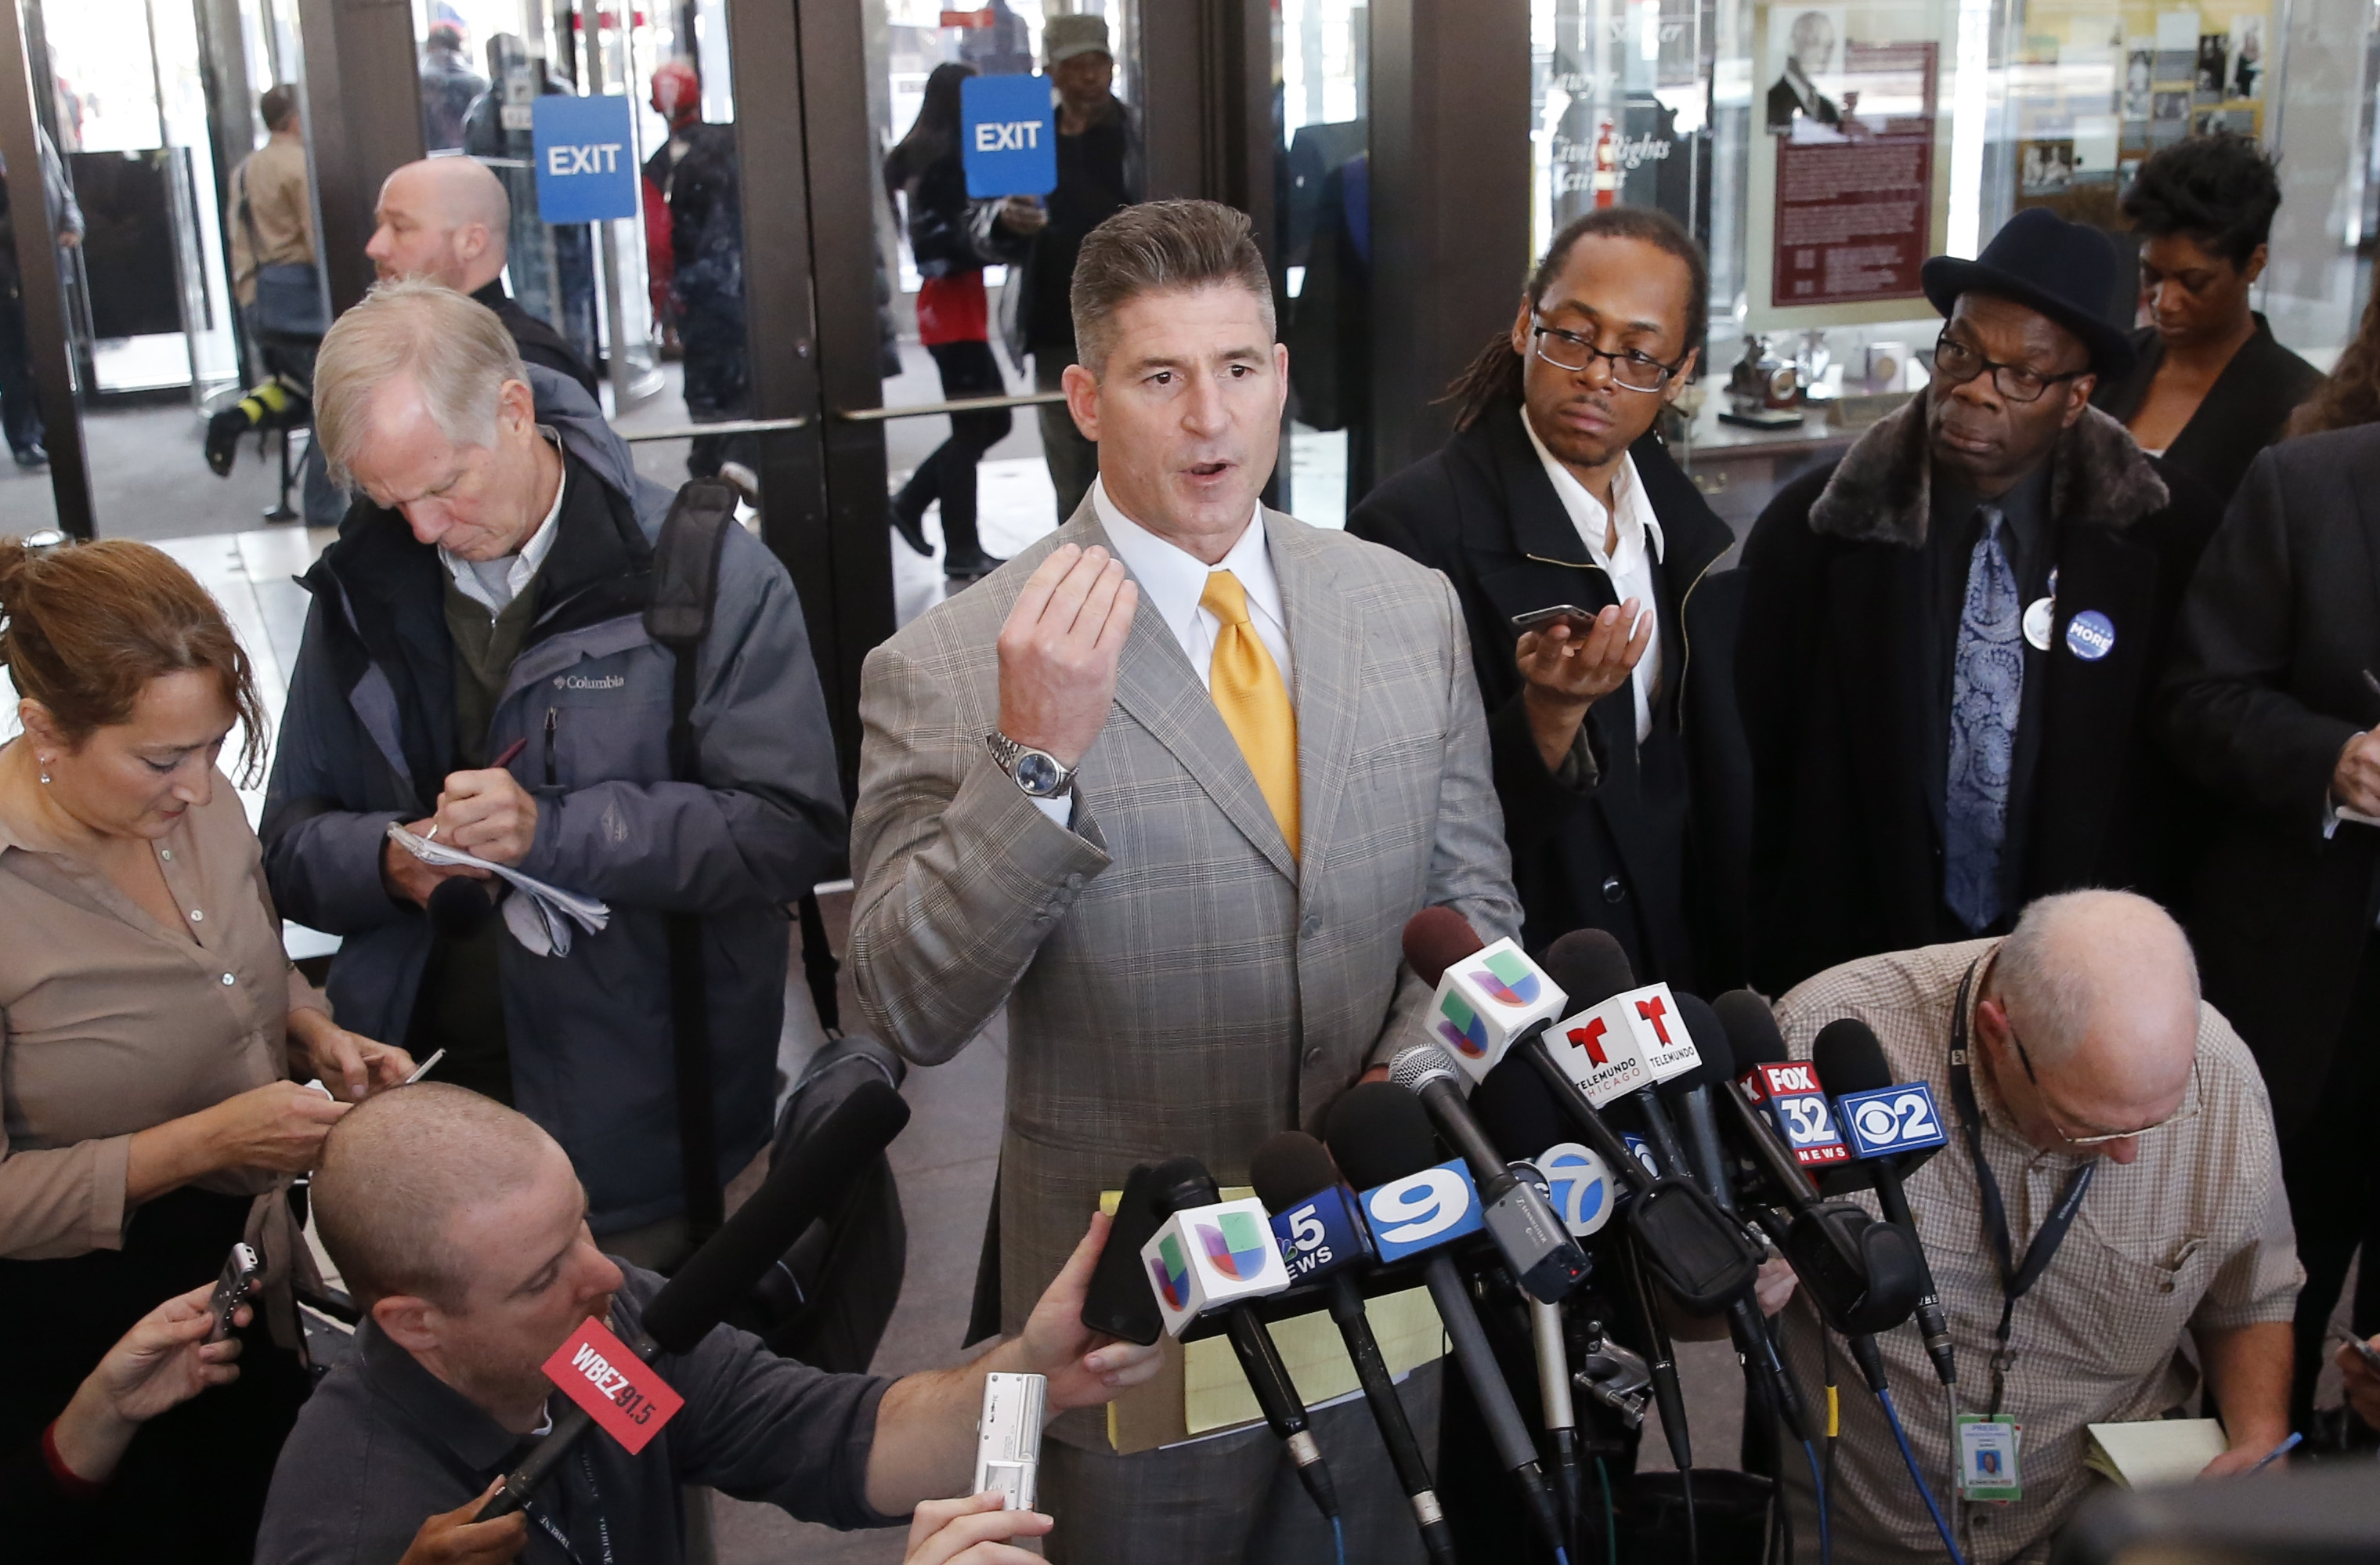 Attorney Daniel Herbert, center, talks to reporters after the bond hearing for his client, Chicago police officer Jason Van Dyke, on murder charges in the killing of 17-year-old Laquan McDonald, Tuesday, Nov. 24, 2015, in Chicago. Van Dyke's hearing is just a day ahead of a deadline for the city to release a squad-car video of the shooting. (AP Photo/Charles Rex Arbogast)